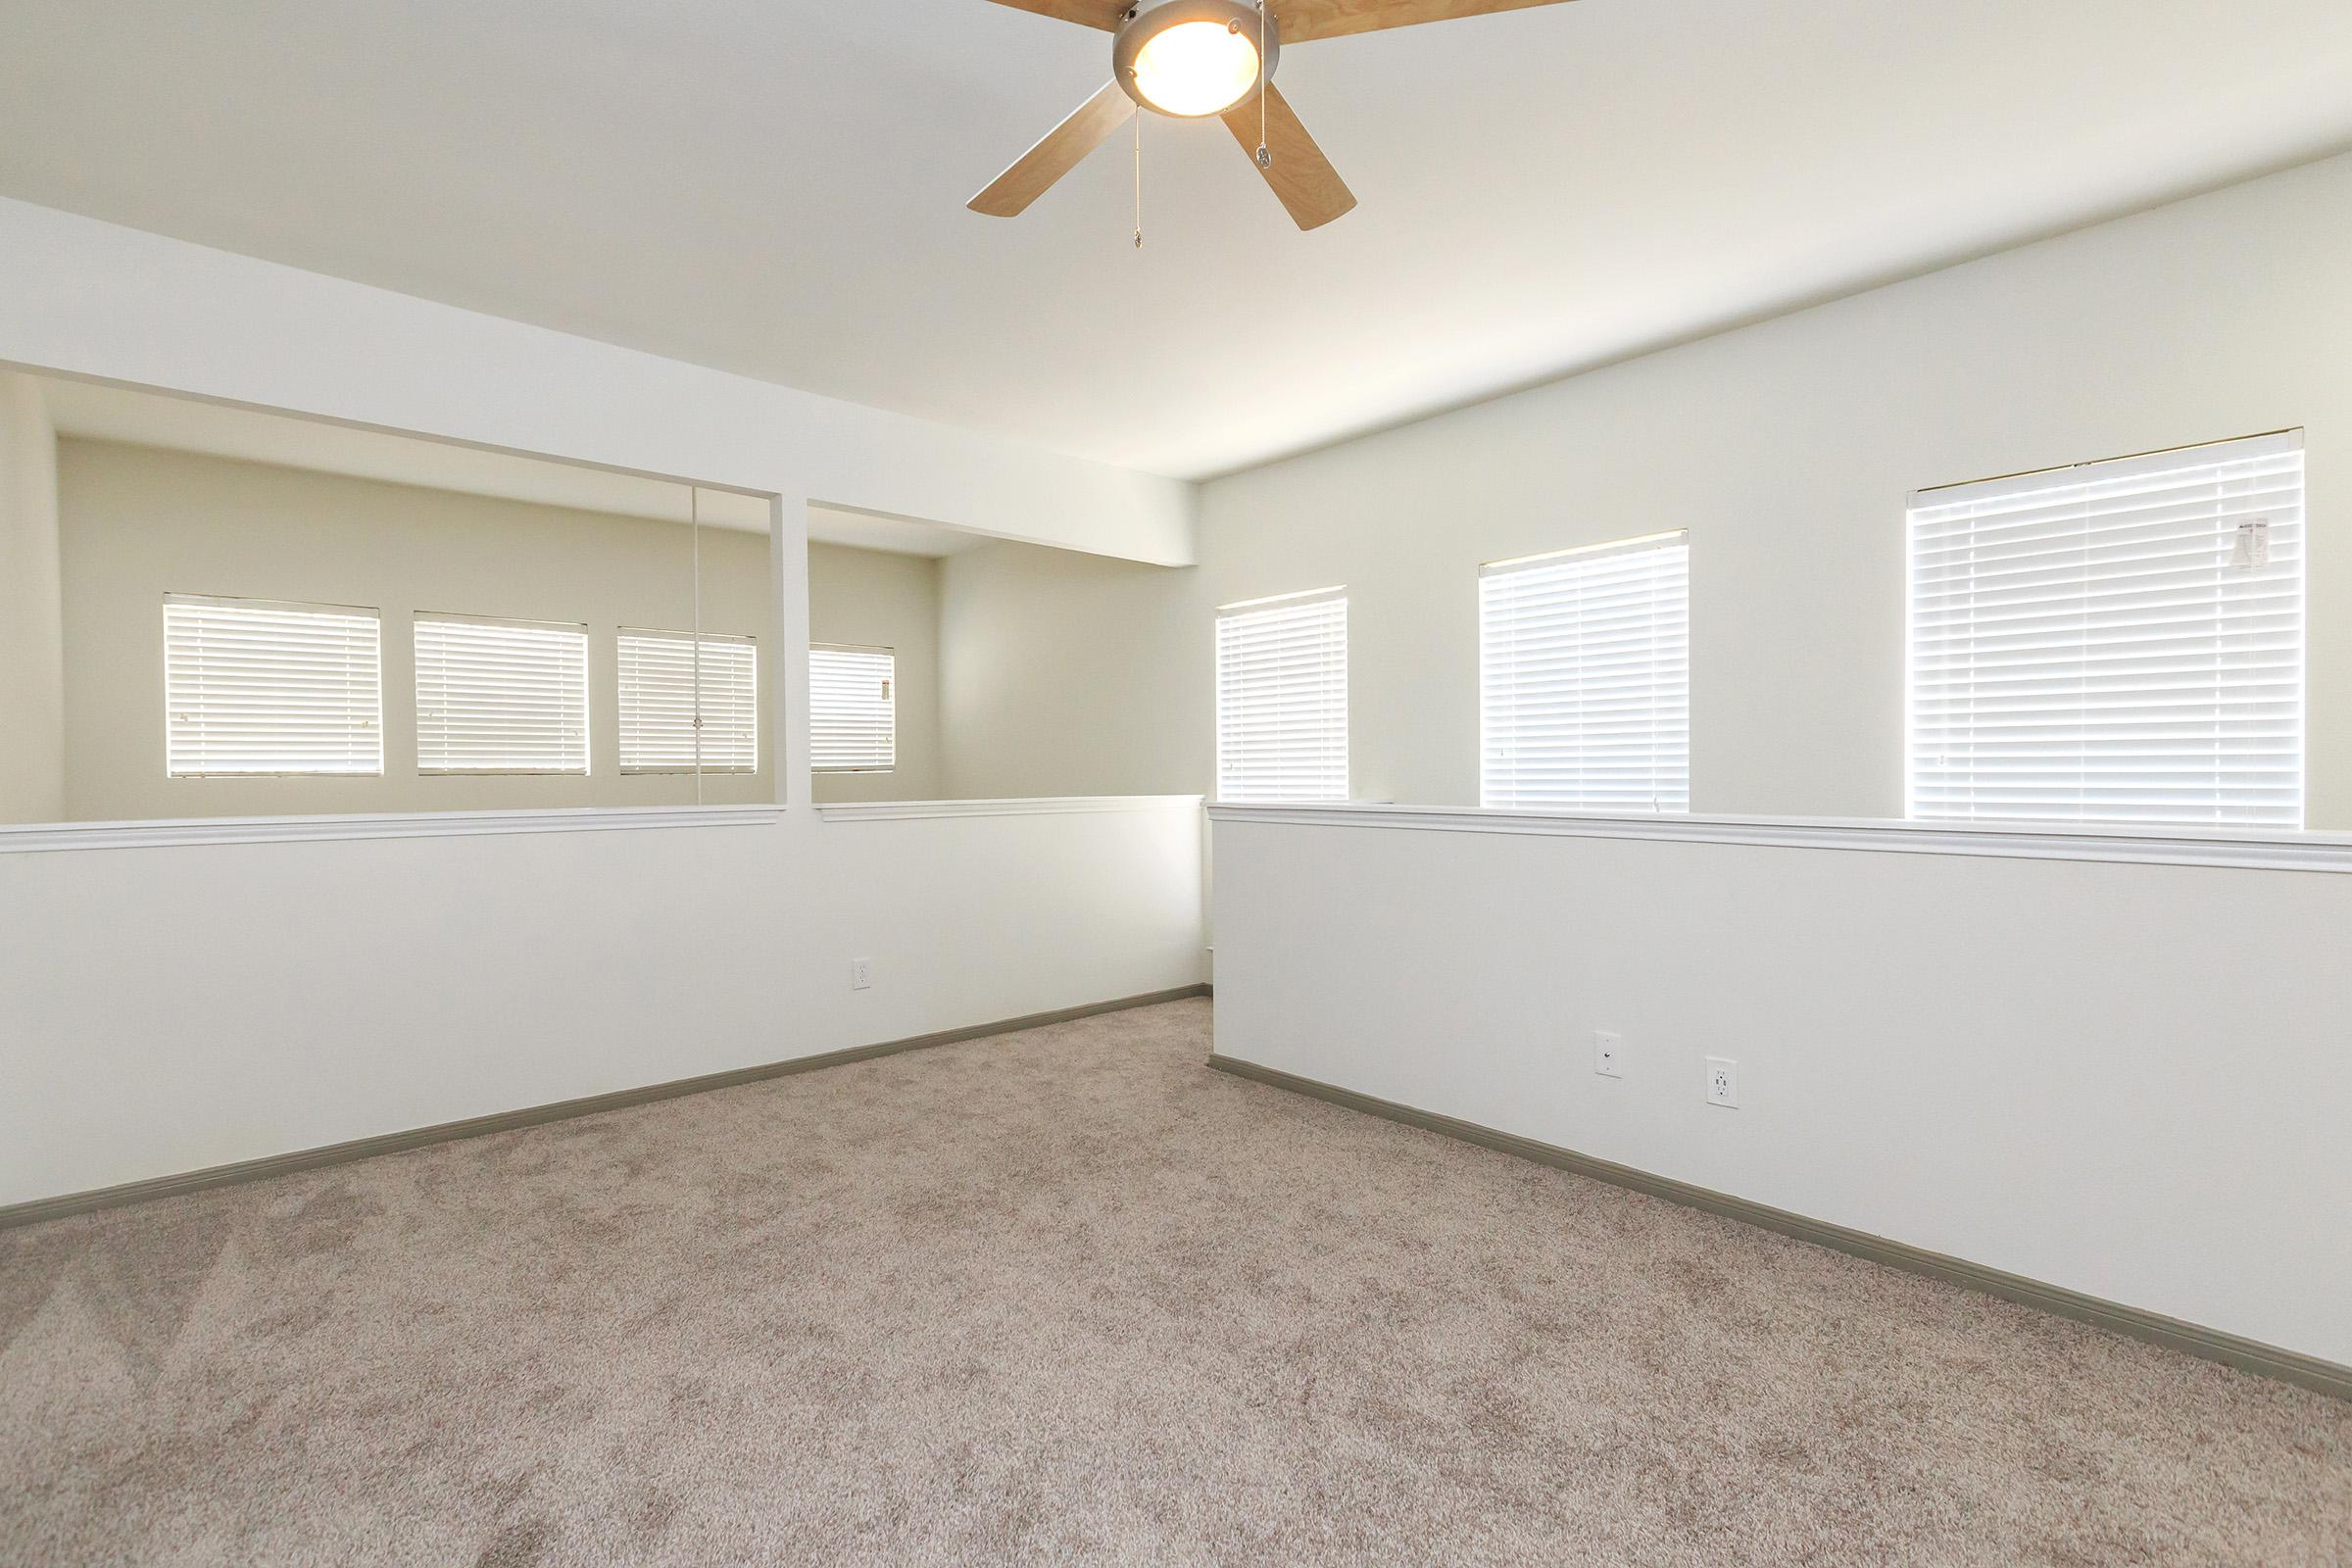 a large white room